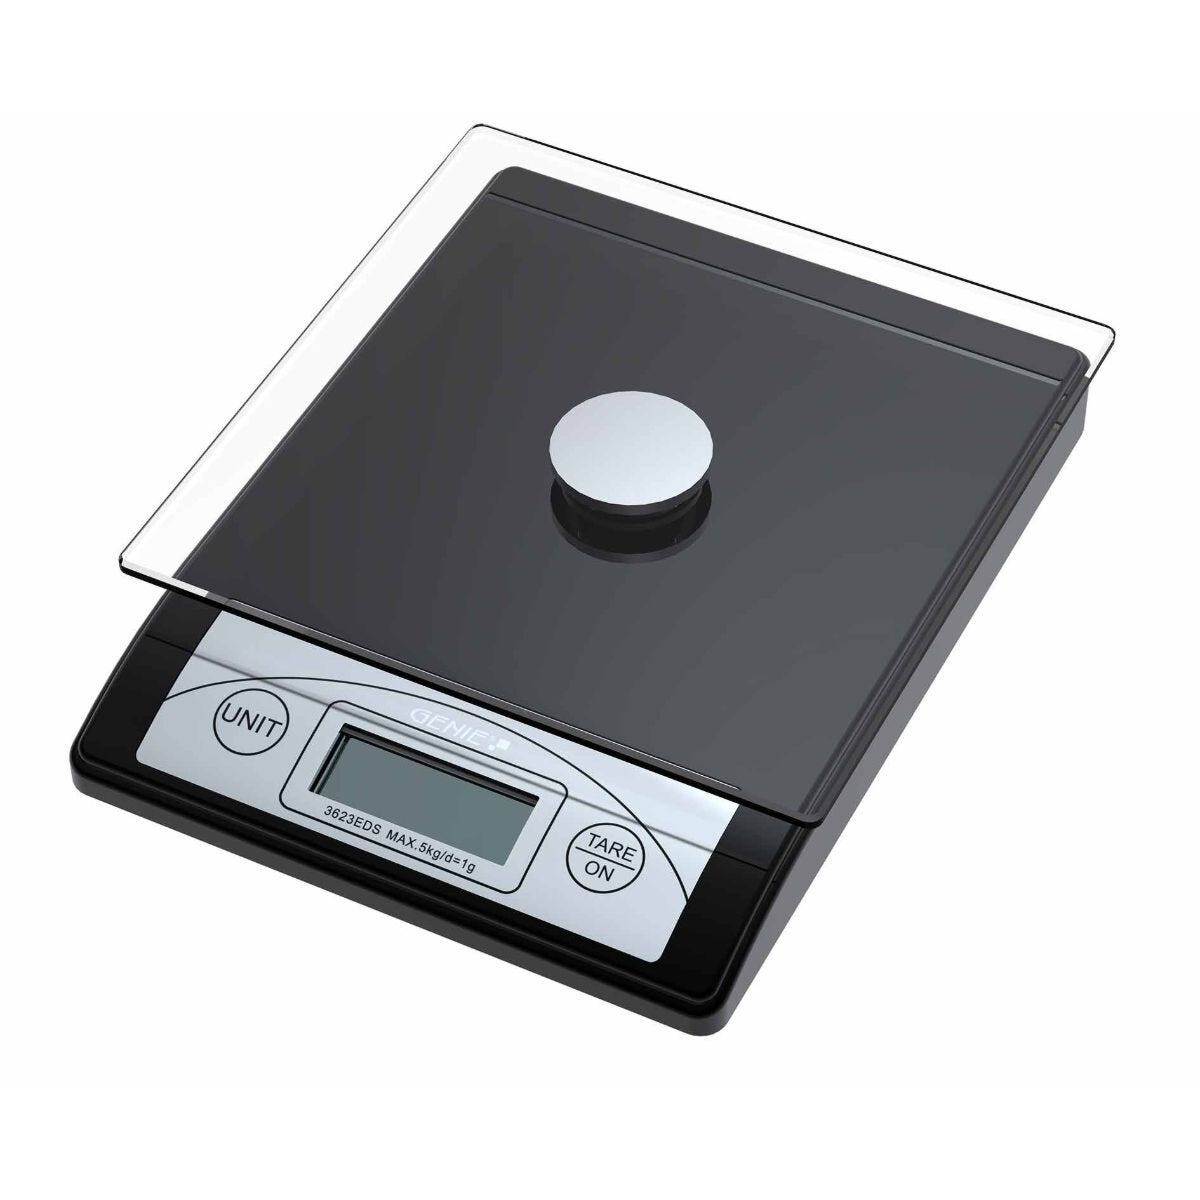 Genie 3623 EDS Digital Scales